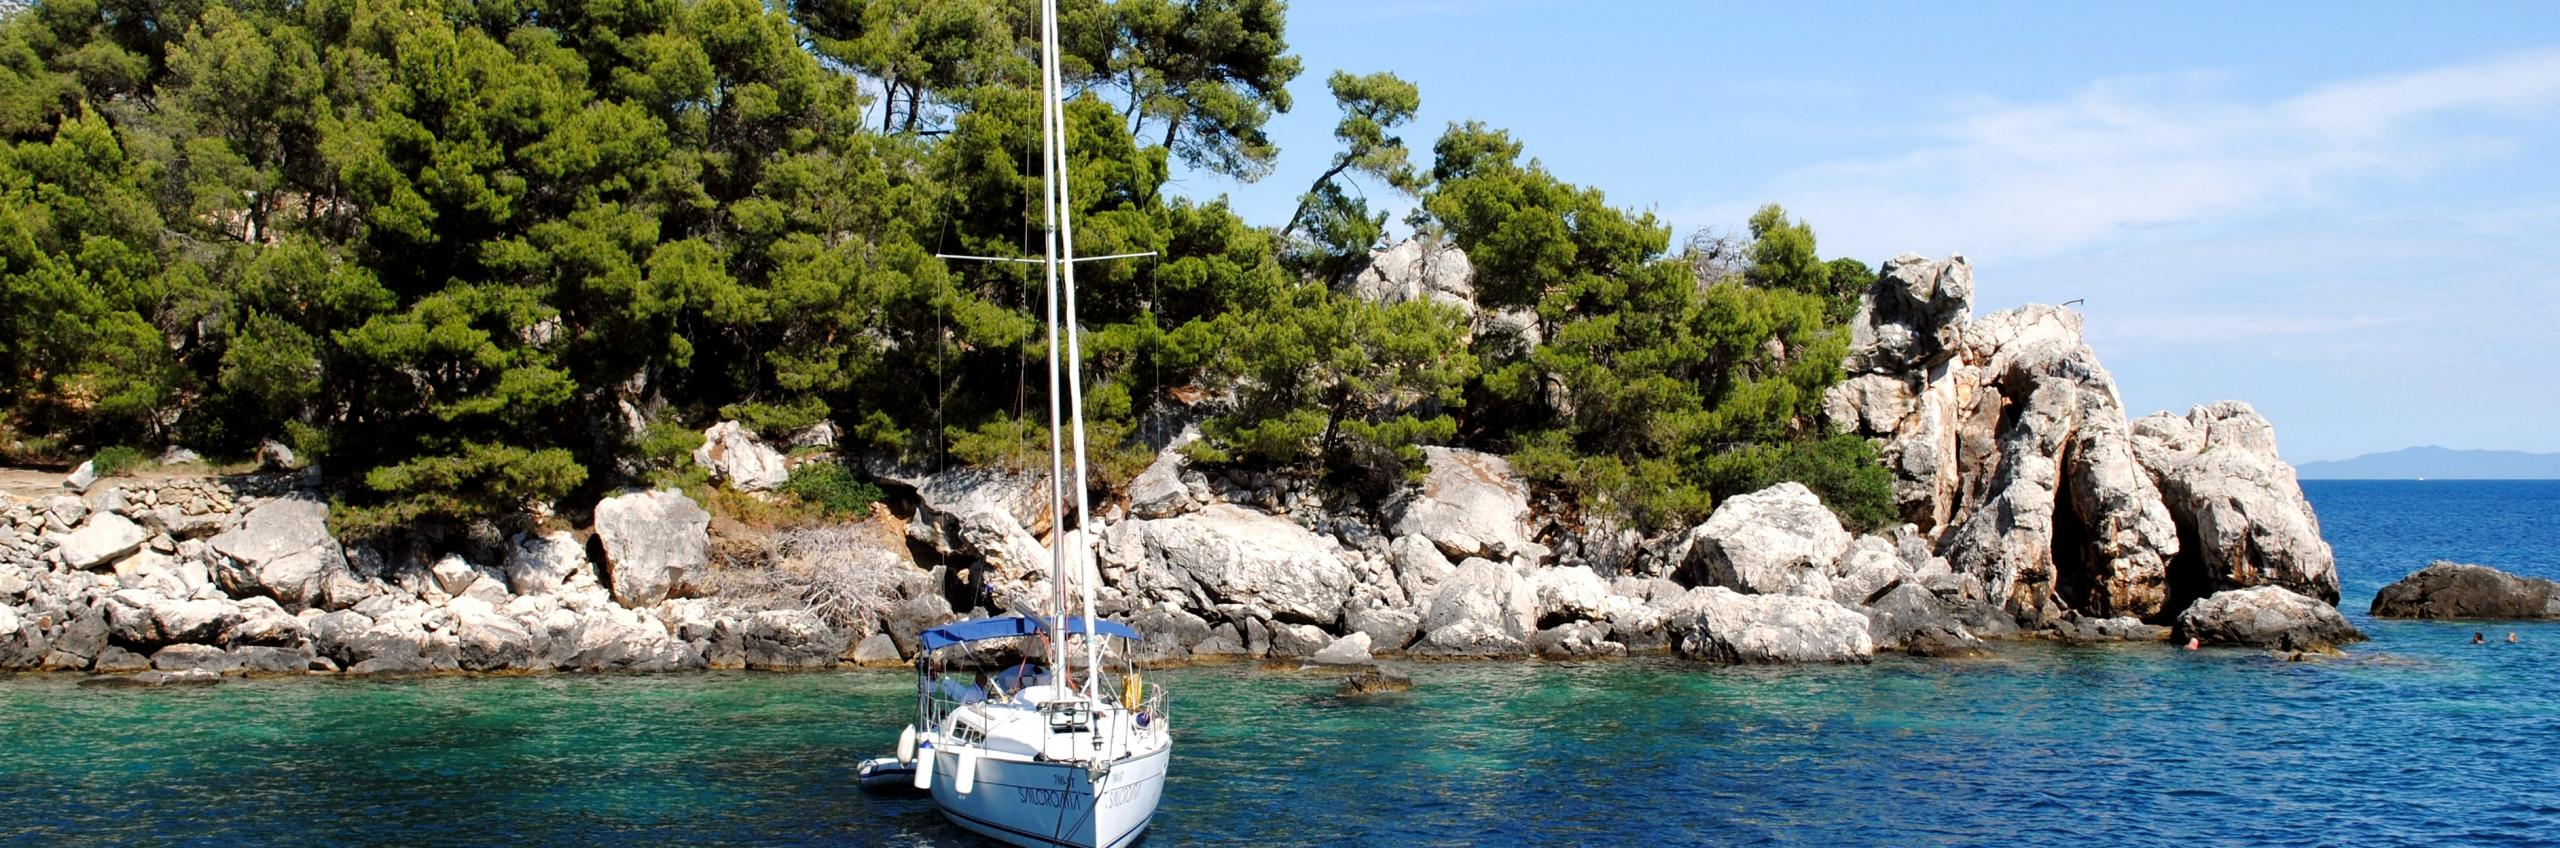 Hvar Best Beaches